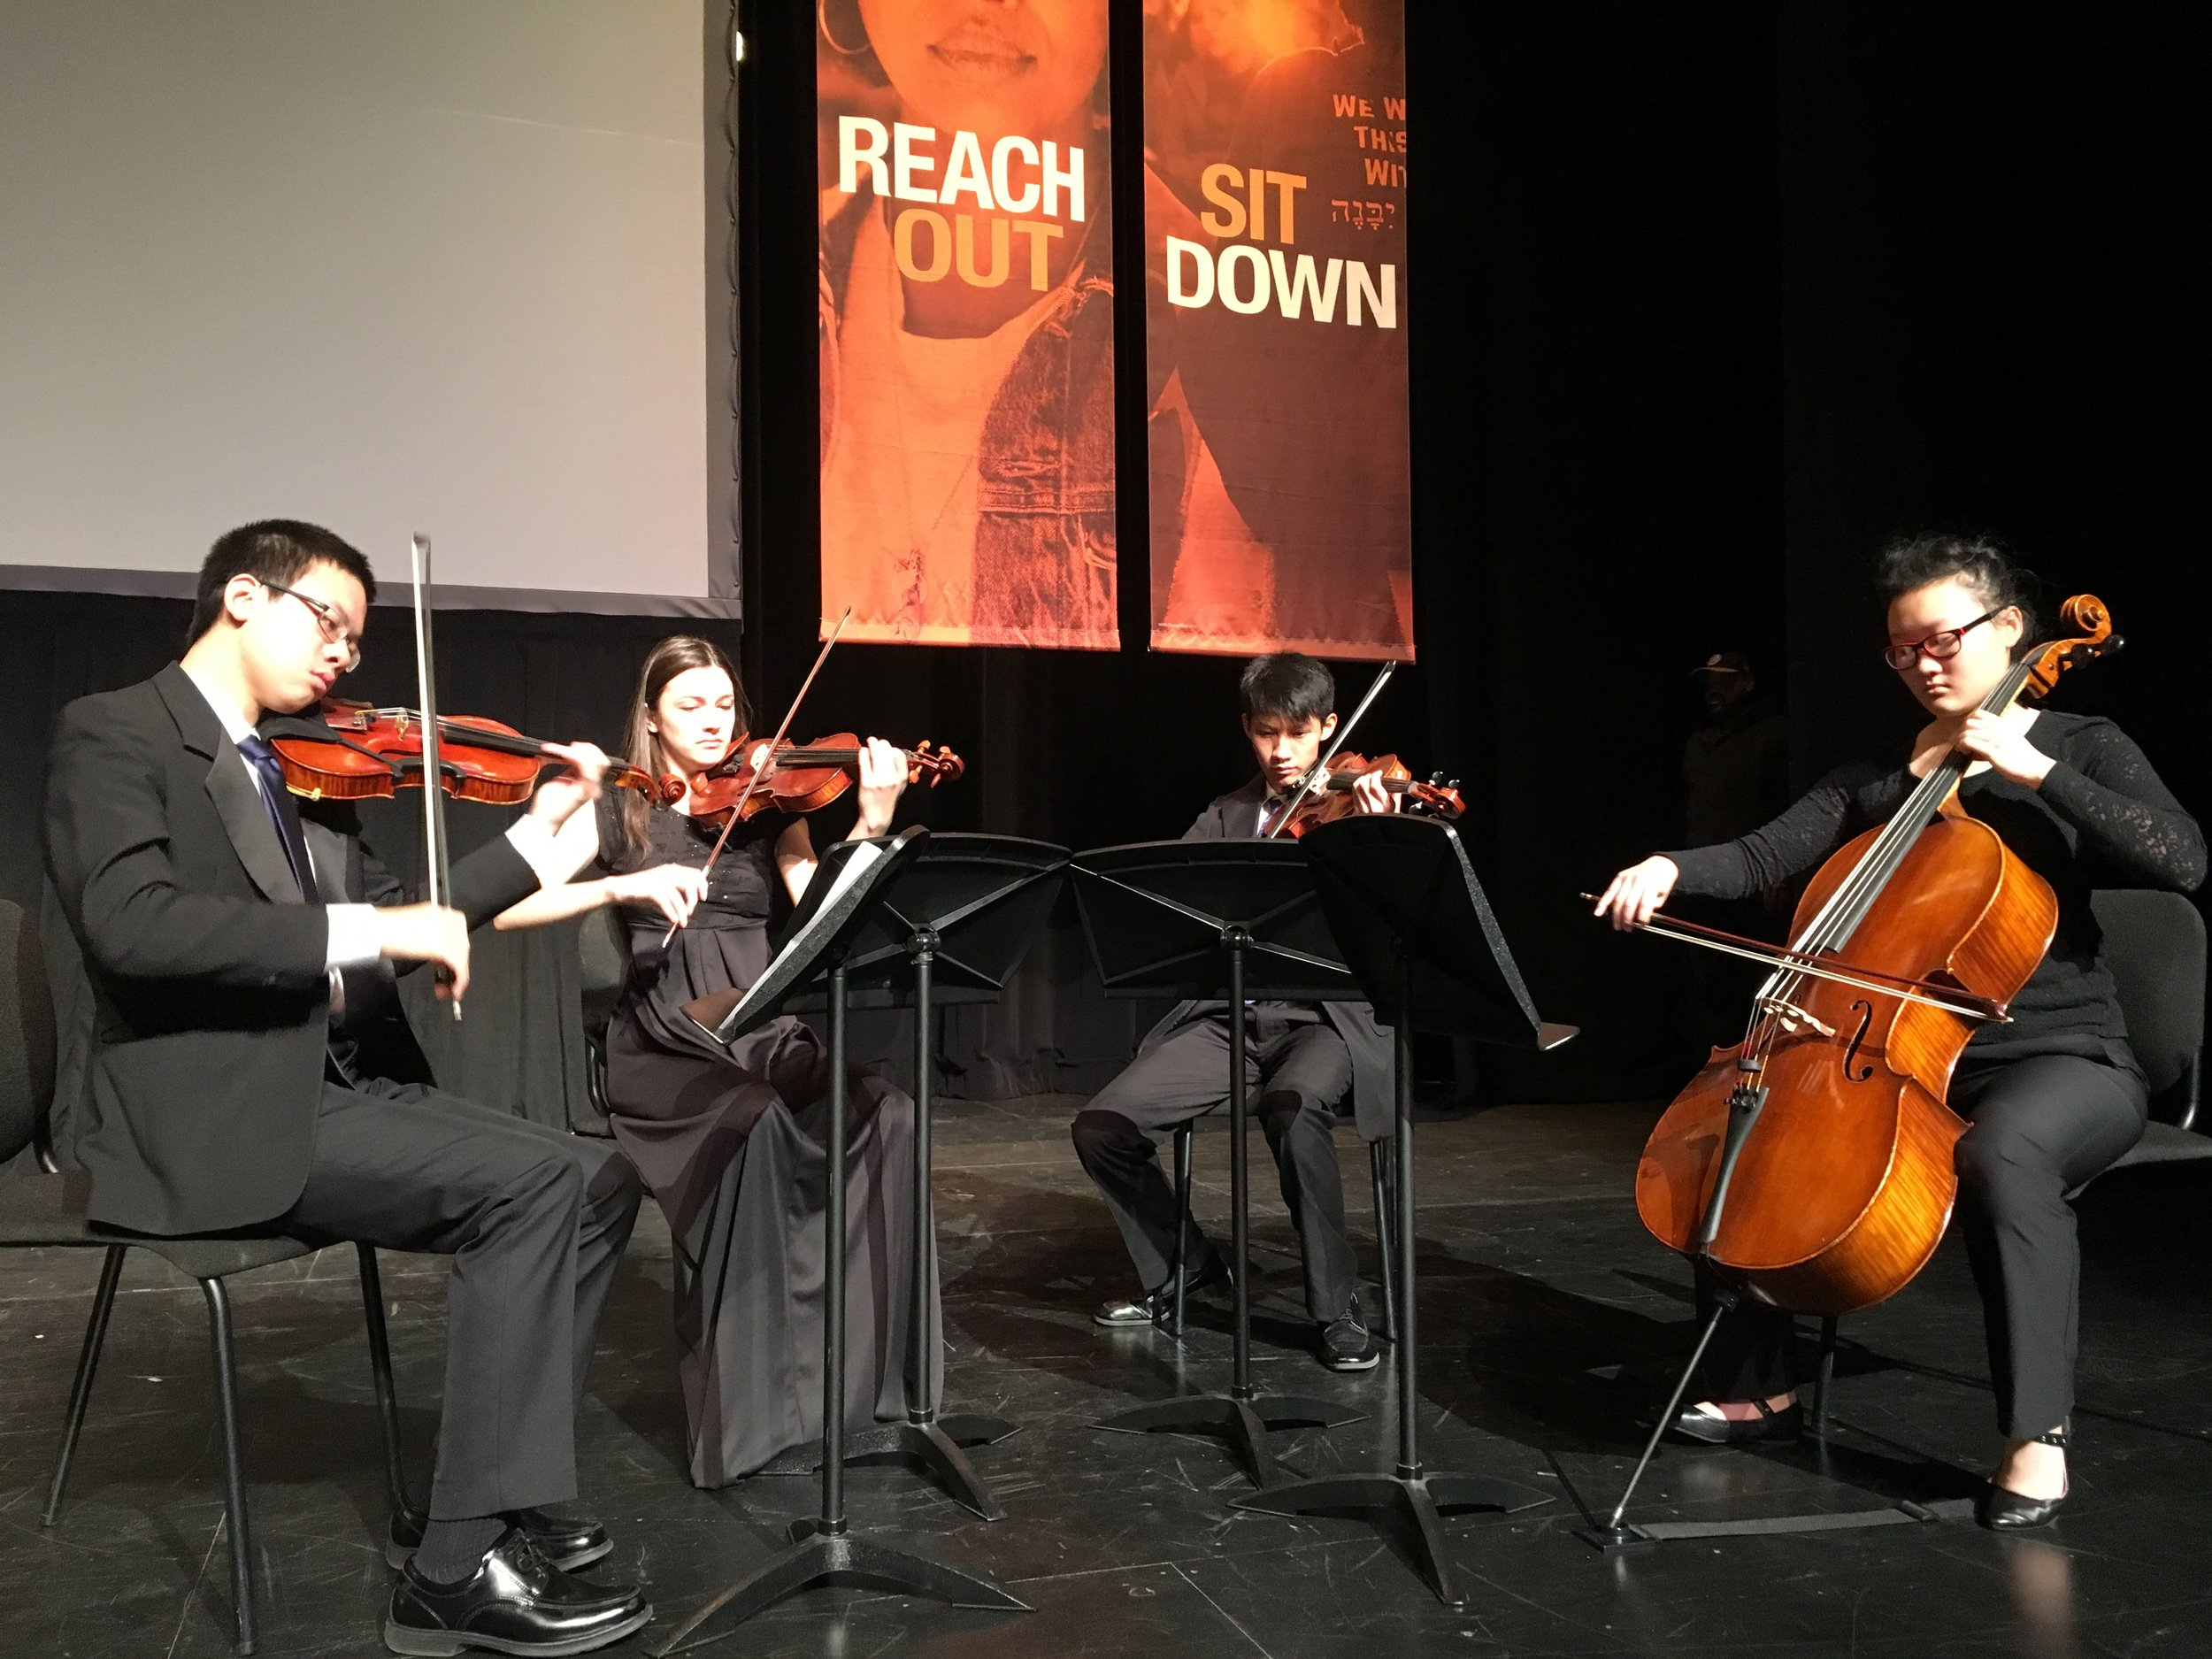 Heinz Endowments Conference - Wednesday, November 14, 2018 - Vivo Quartet - August Wilson African American Cultural CenterThe Heinz Endowments invited the Vivo Quartet to perform during a tribute to the Tree of Life victims at the opening of their conference Courage to Act: Nonprofits and the Call to Moral Leadership.